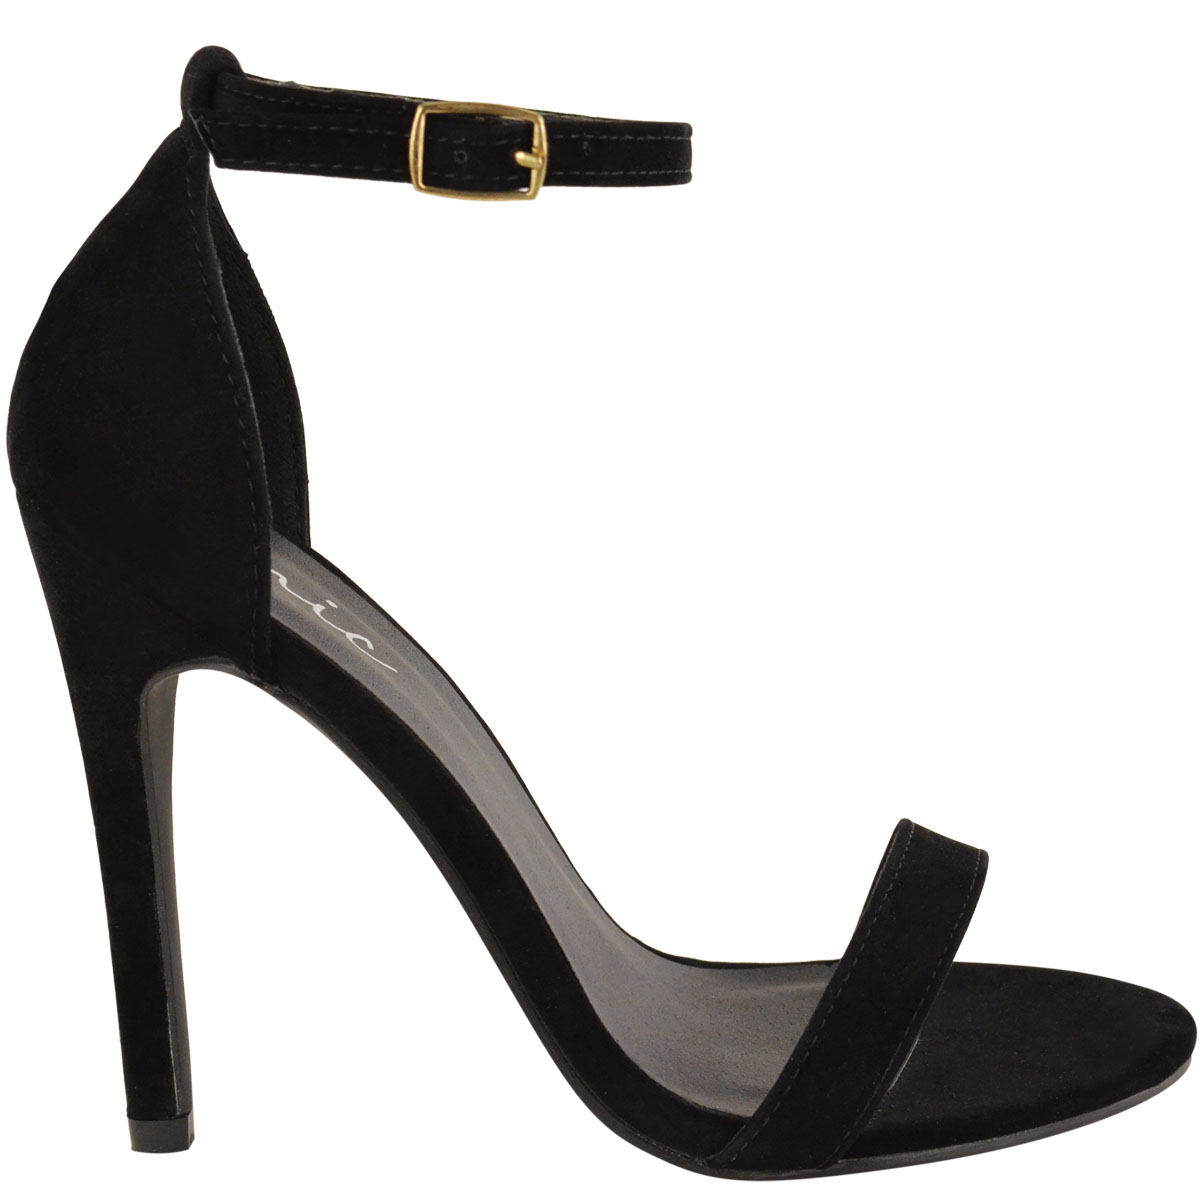 Black party sandals - Womens Ladies Barely There High Heel Ankle Cross